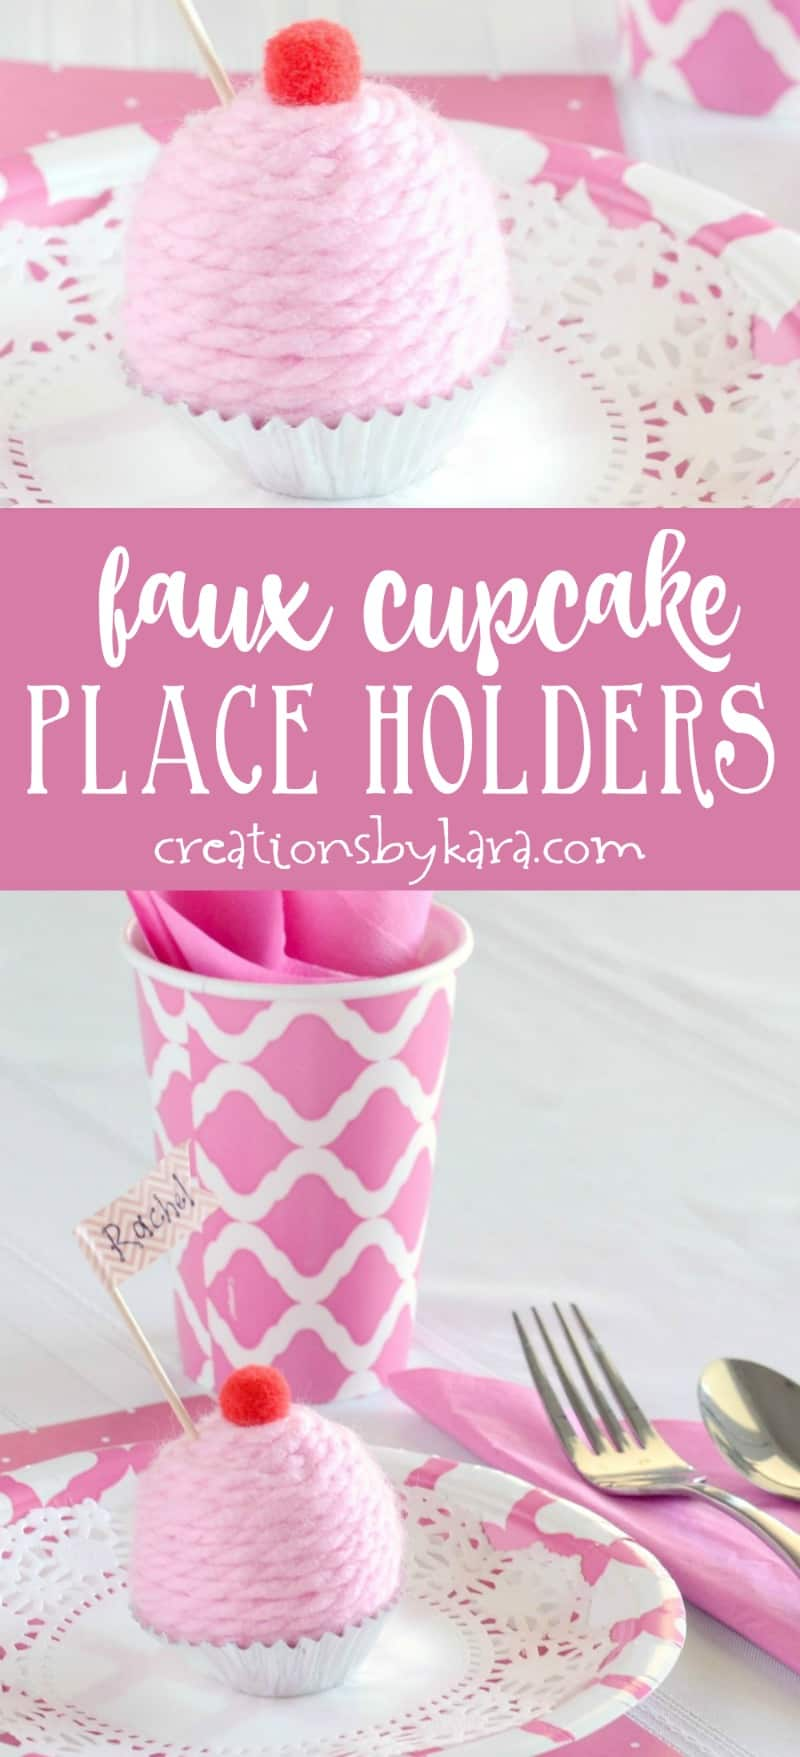 How to make Faux Mini Cupcake Place Holders - these cute little place holders are perfect for birthday parties, tea parties, or baby showers. So fun to make! #placeholder #cupcake #easycraft